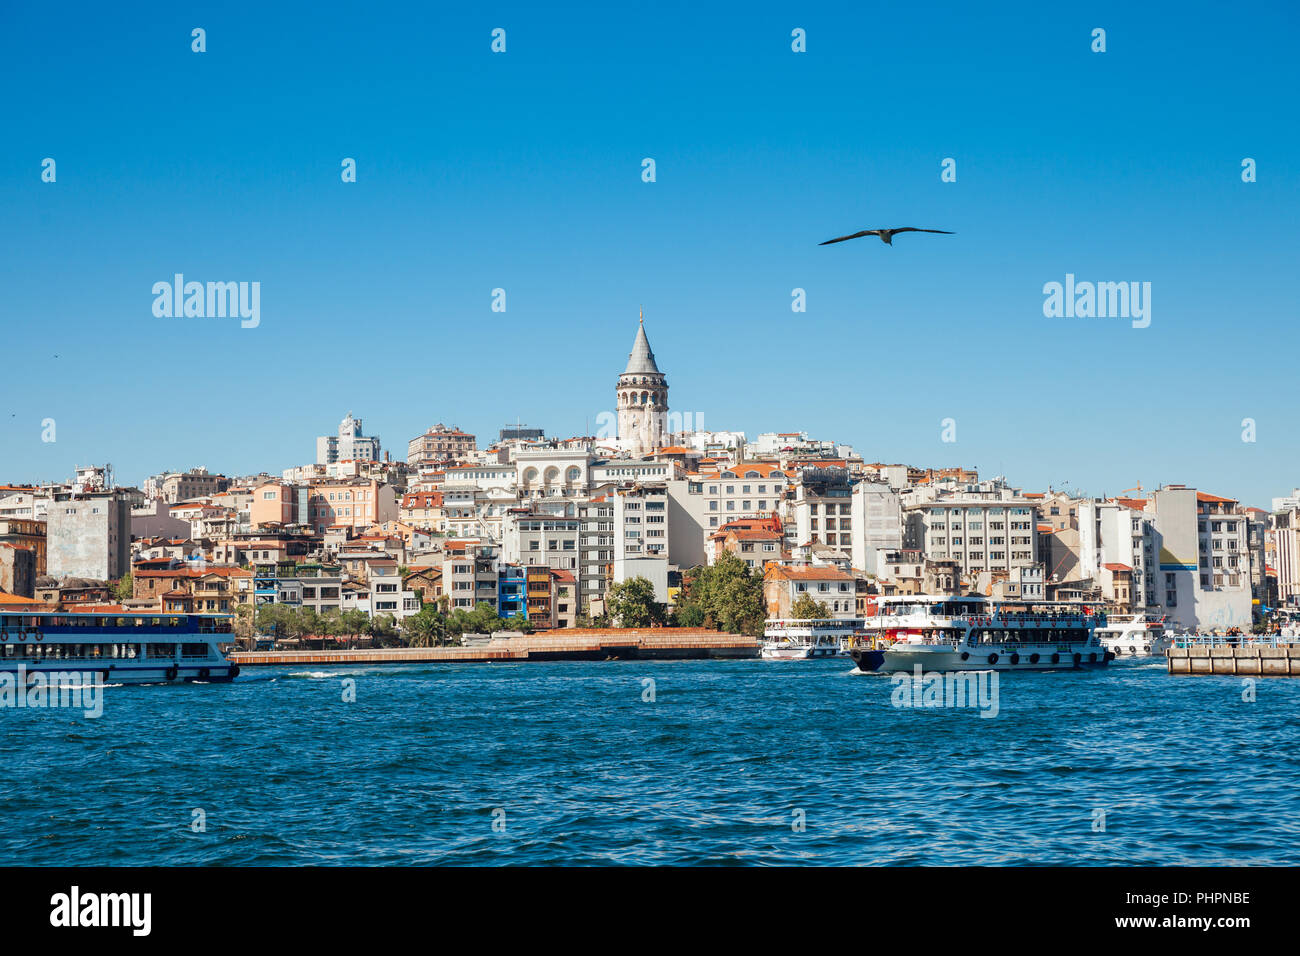 The beautiful view of the Galata Tower across the Golden Horn, Istanbul, Turkey Stock Photo